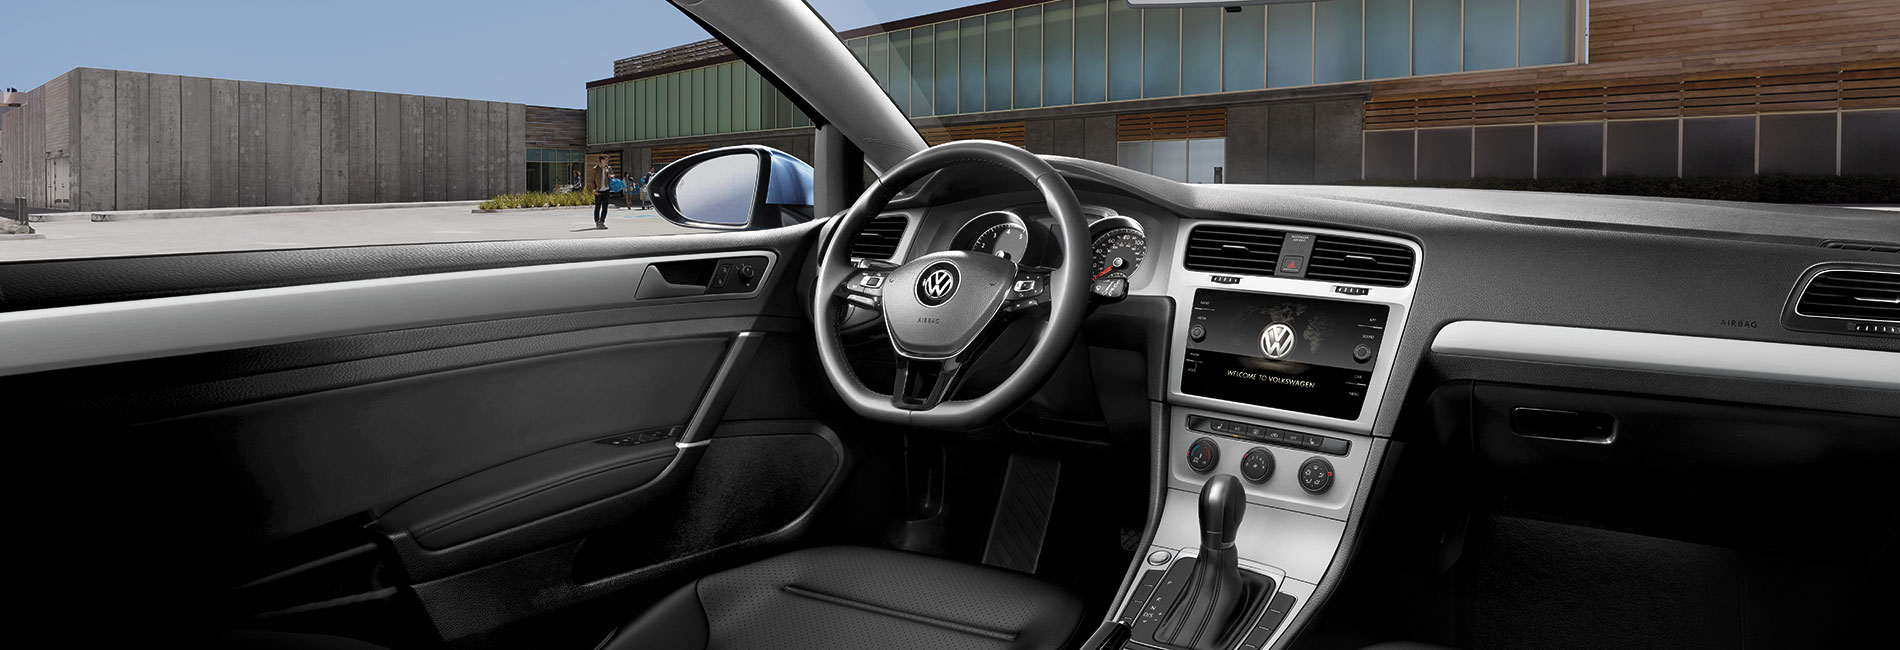 Volkswagen Golf Interior Vehicle Features